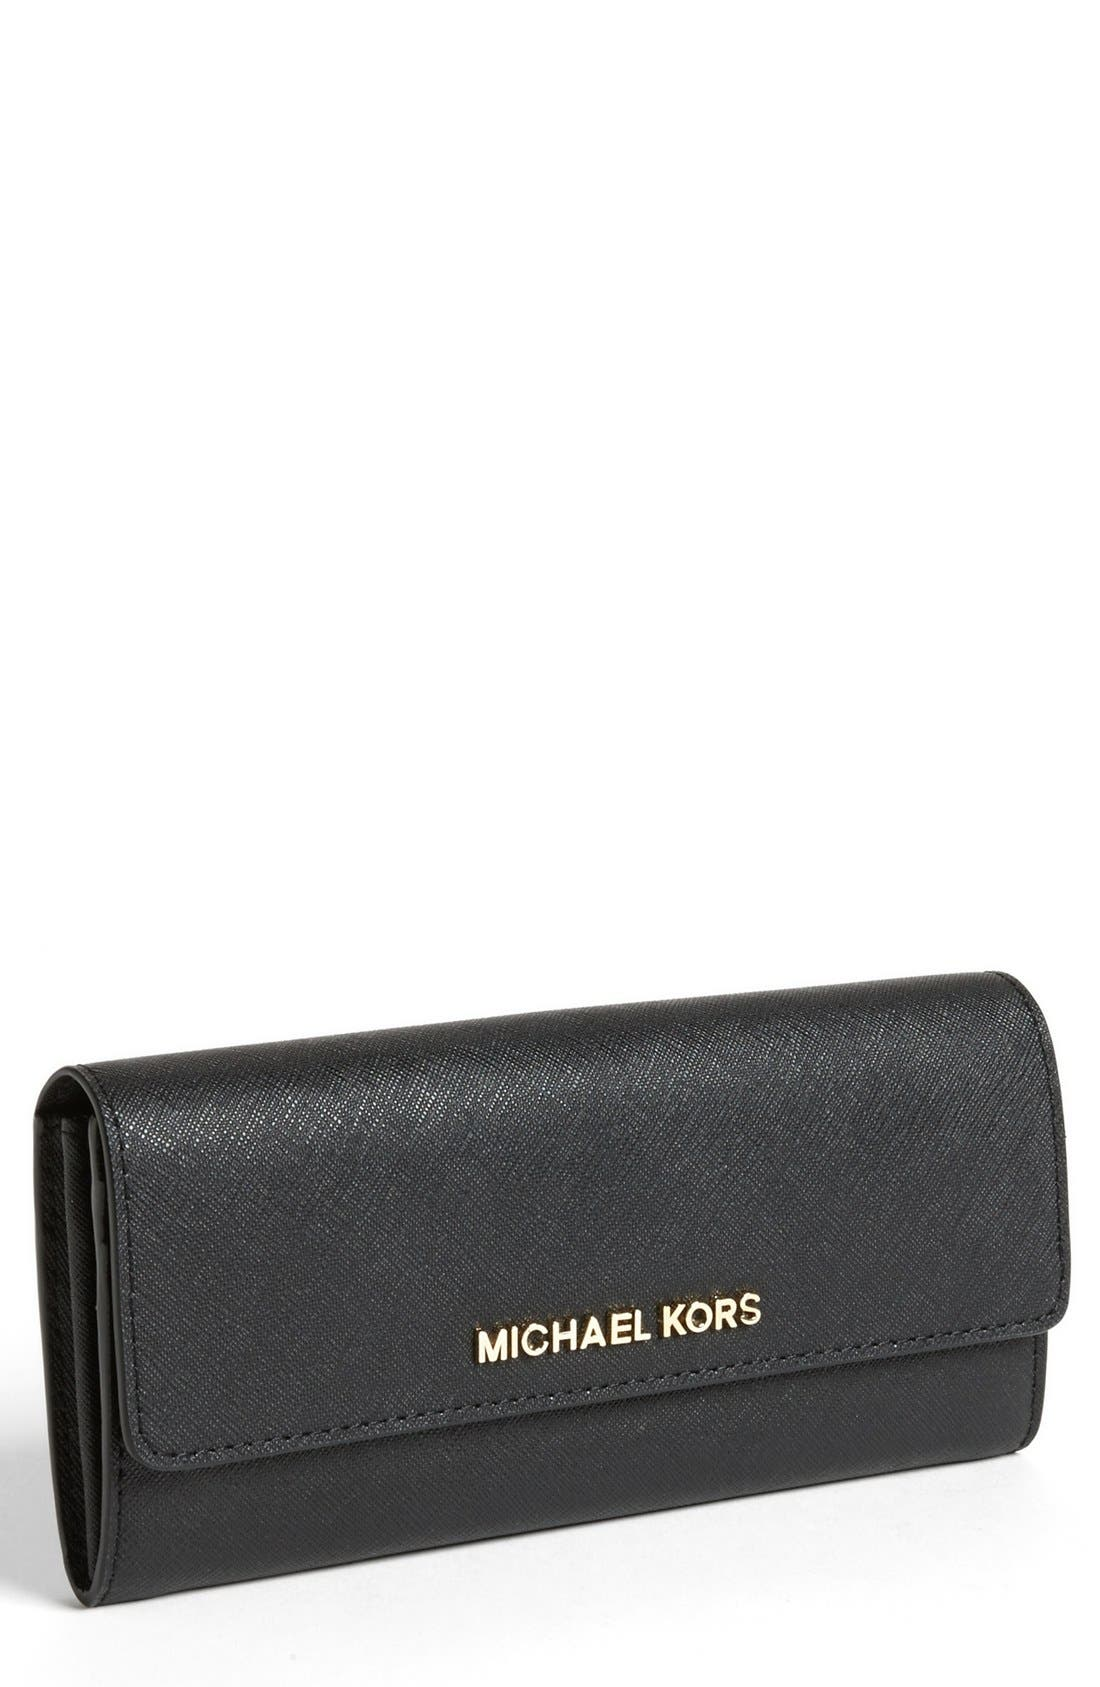 Alternate Image 1 Selected - MICHAEL Michael Kors Saffiano Leather Carryall Wallet